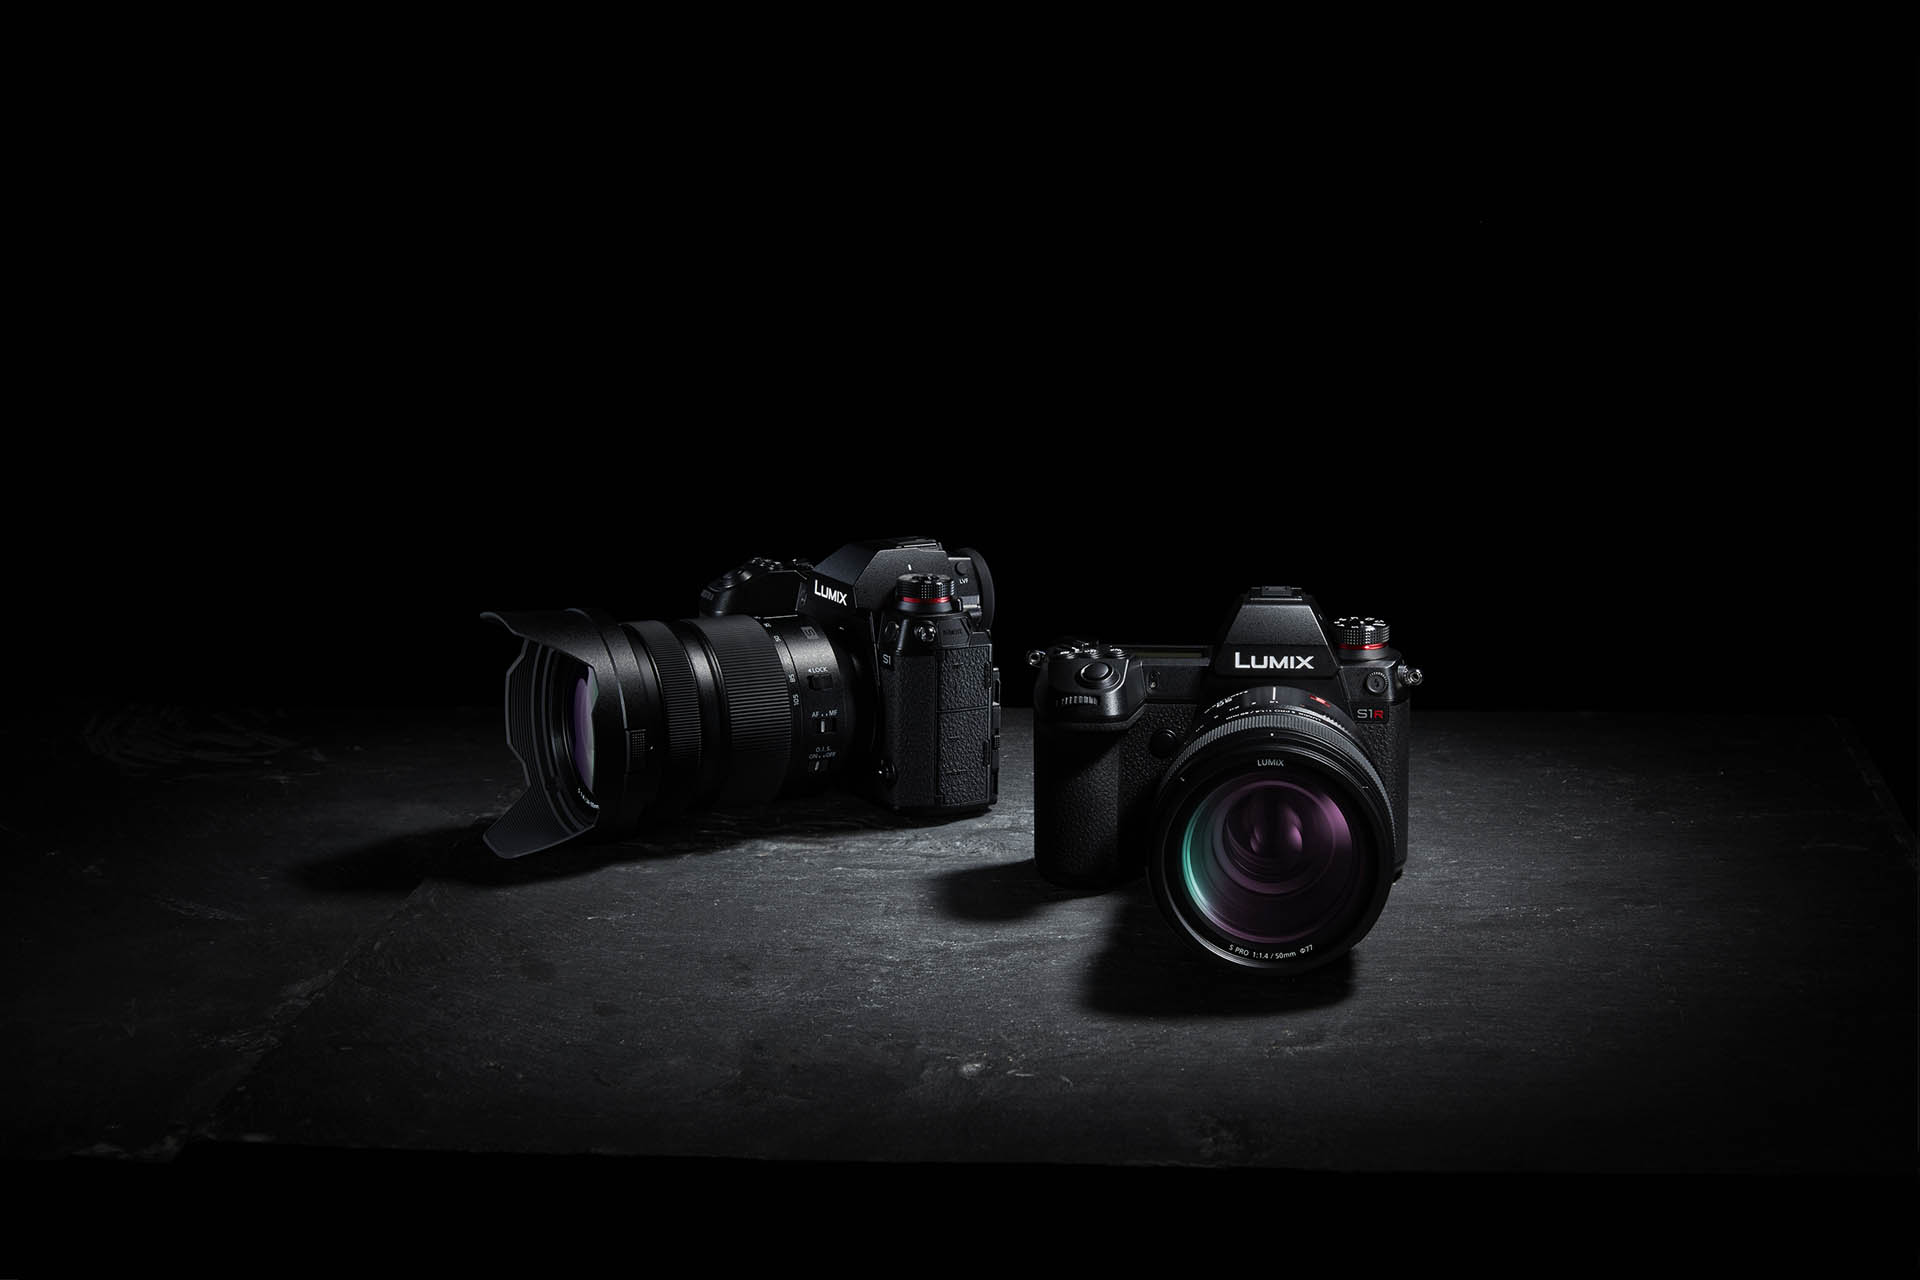 Panasonic LUMIX S1R and S1